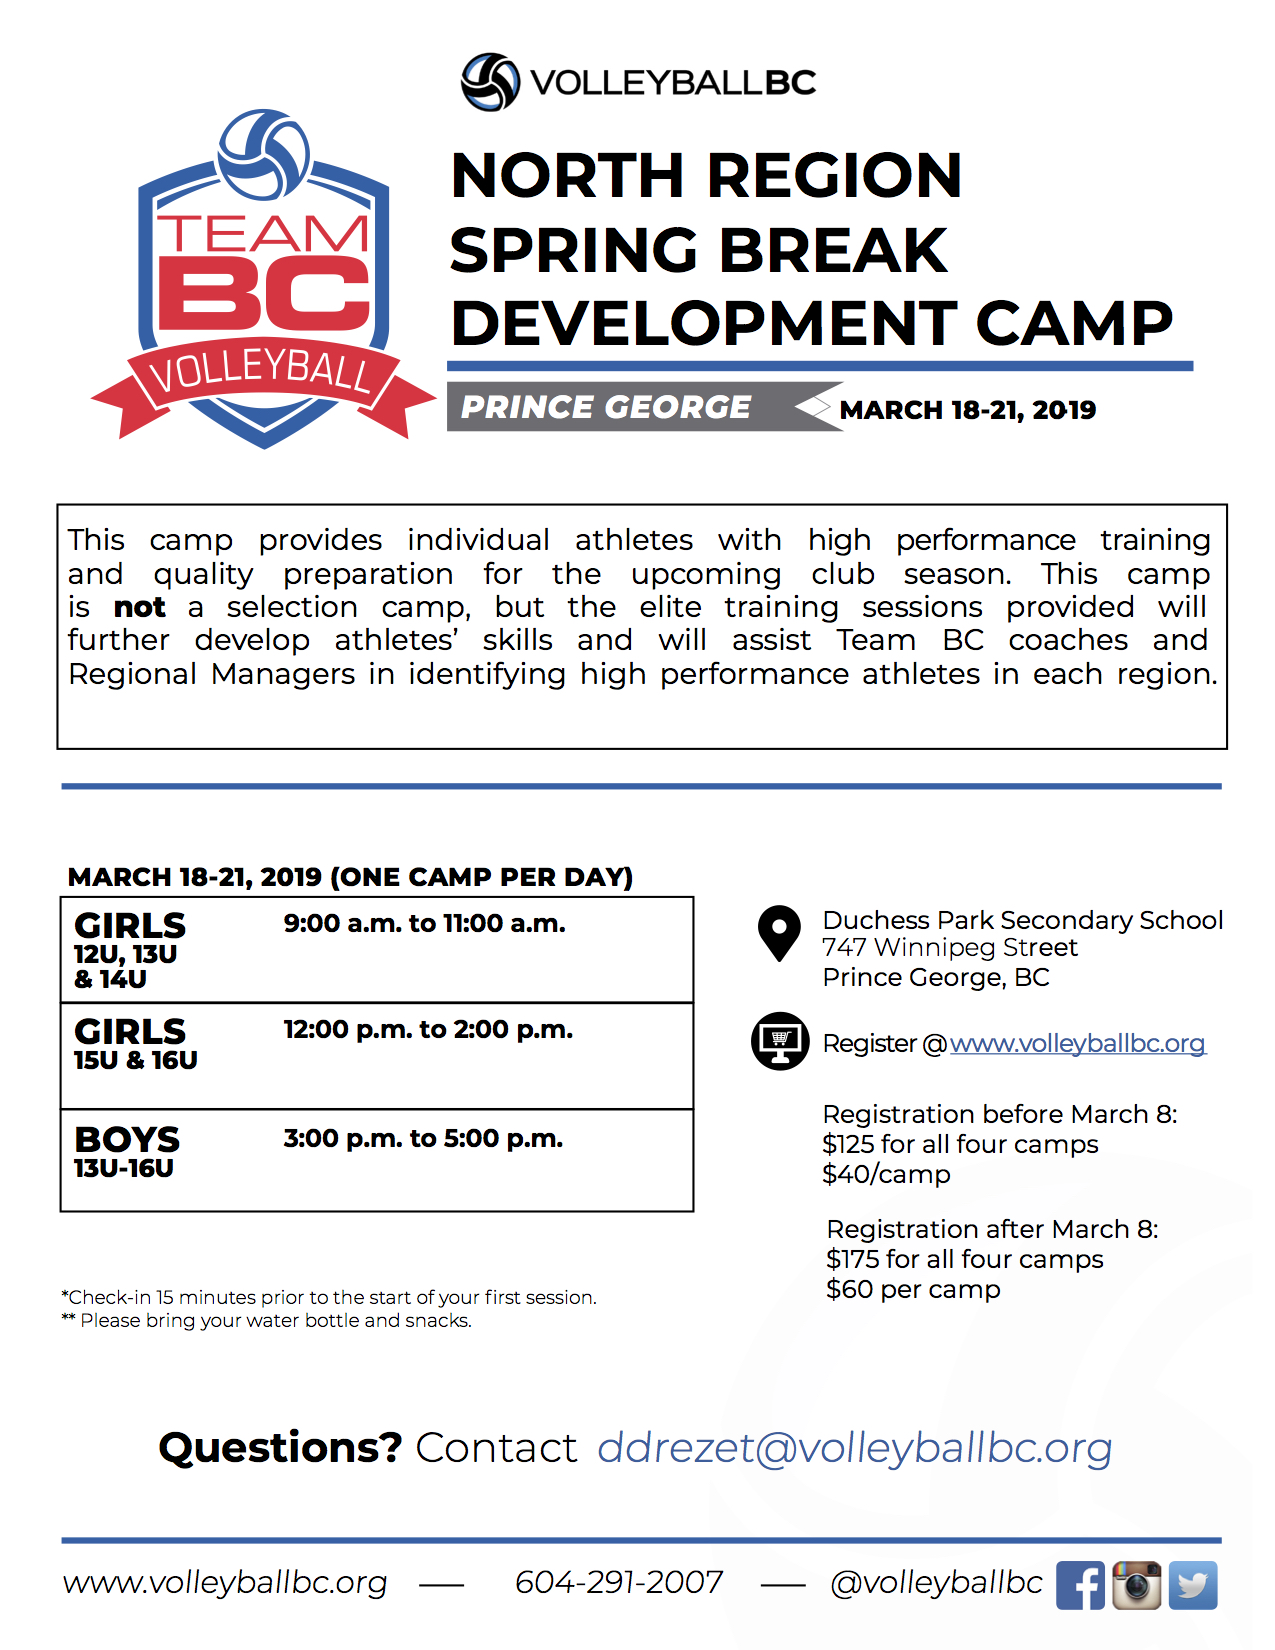 team-bc-spring-break-PG-camps-2019-REVISED (NEW LOCATION).jpg